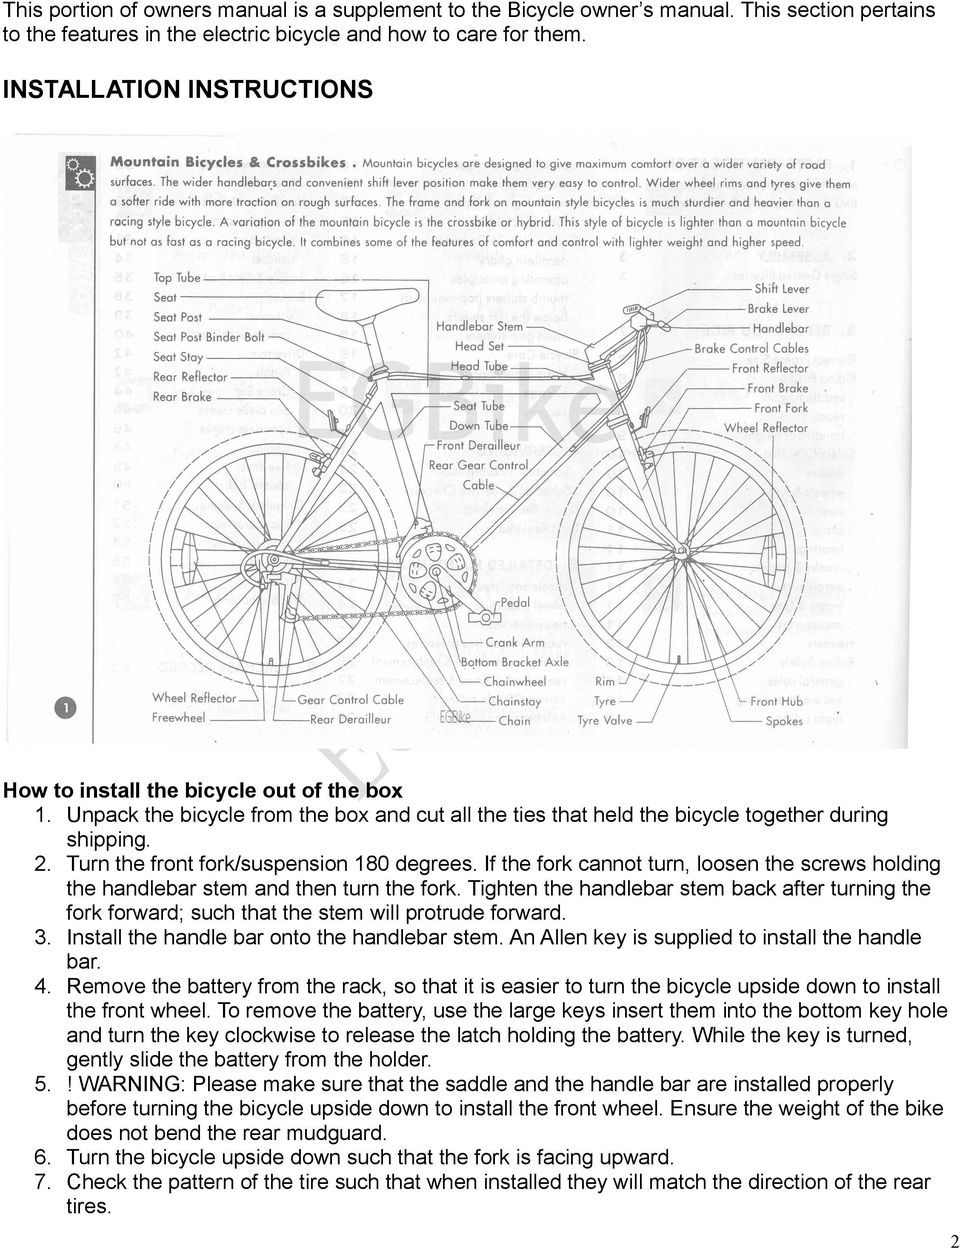 Electric Bicycle Owner S Manual Supplement Pdf Rear Derailleur Diagram Turn The Front Fork Suspension 180 Degrees If Cannot Loosen